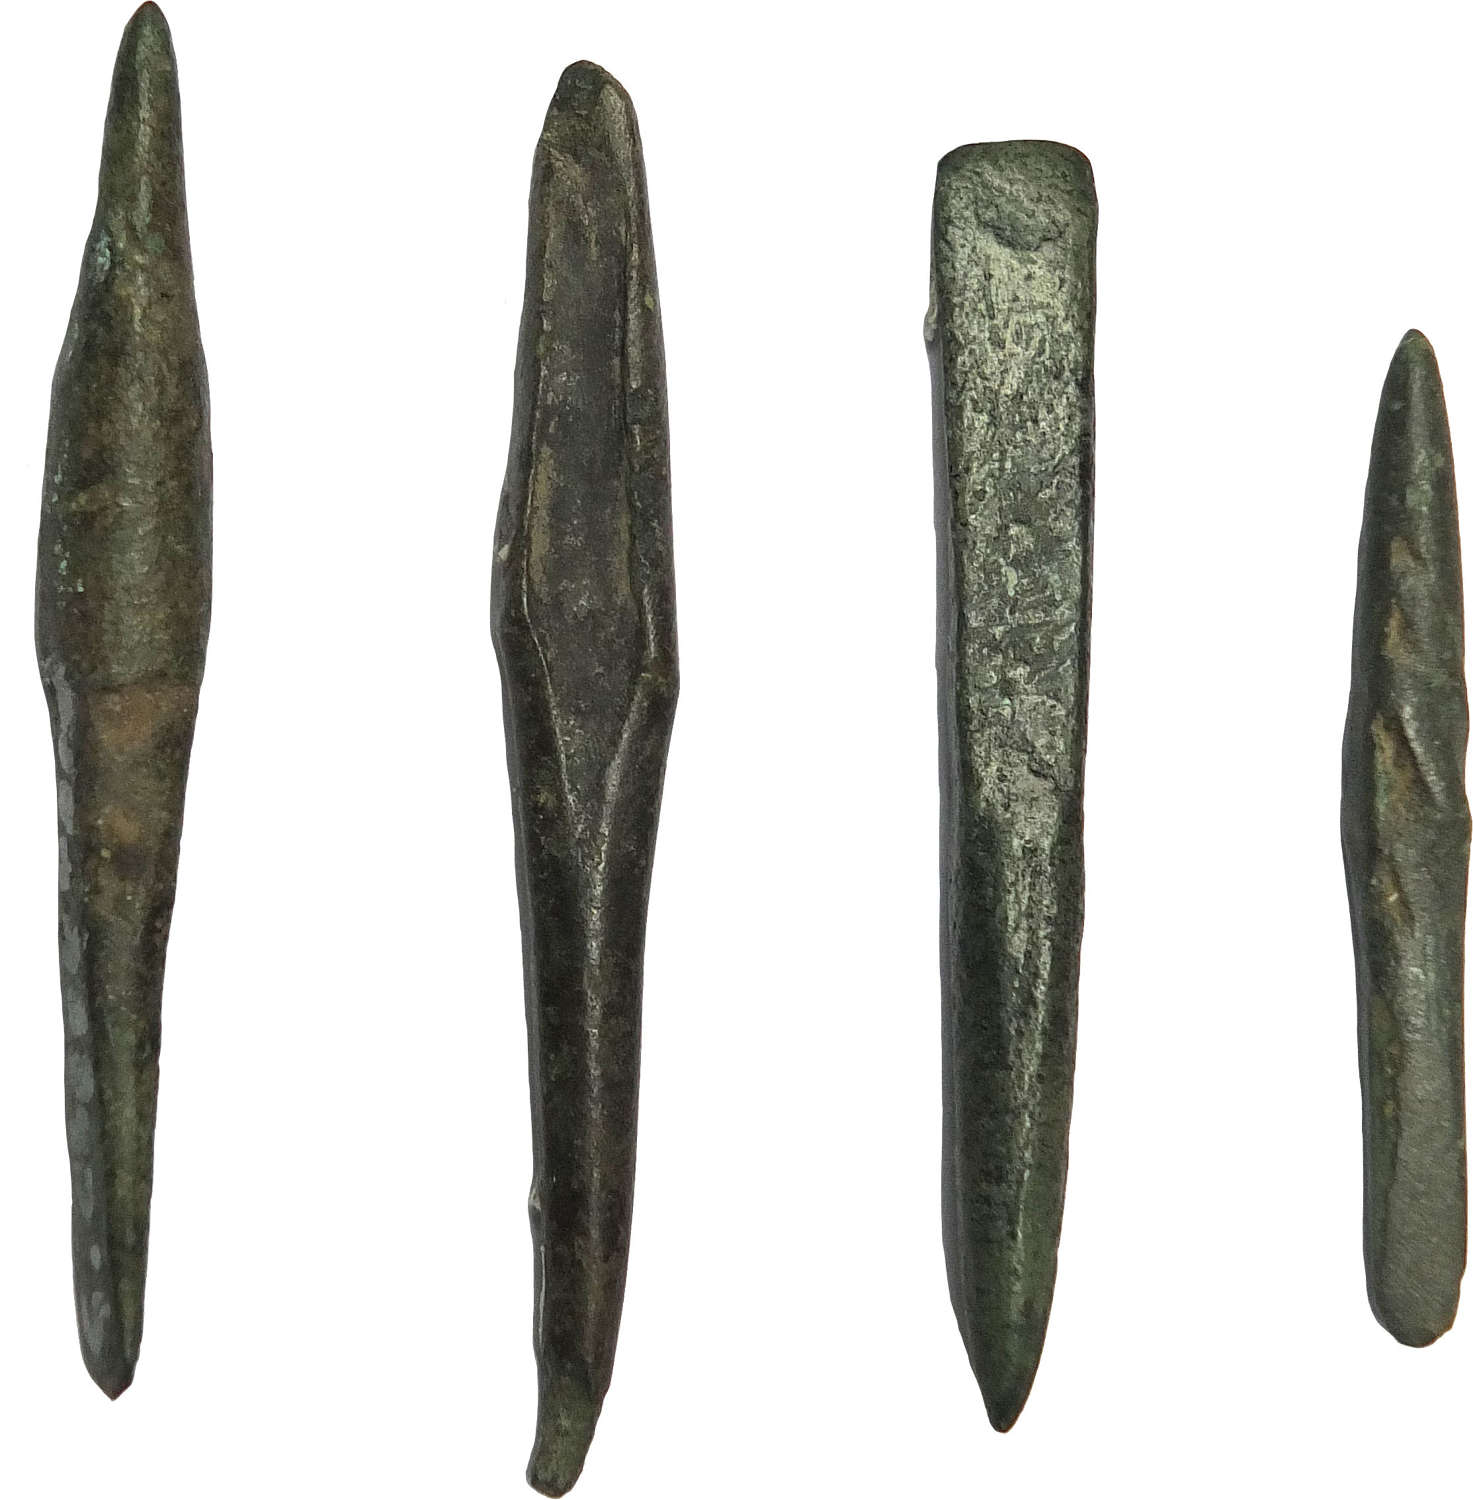 Four Late Bronze Age bronze awls or punches, 1150-800 B.C.